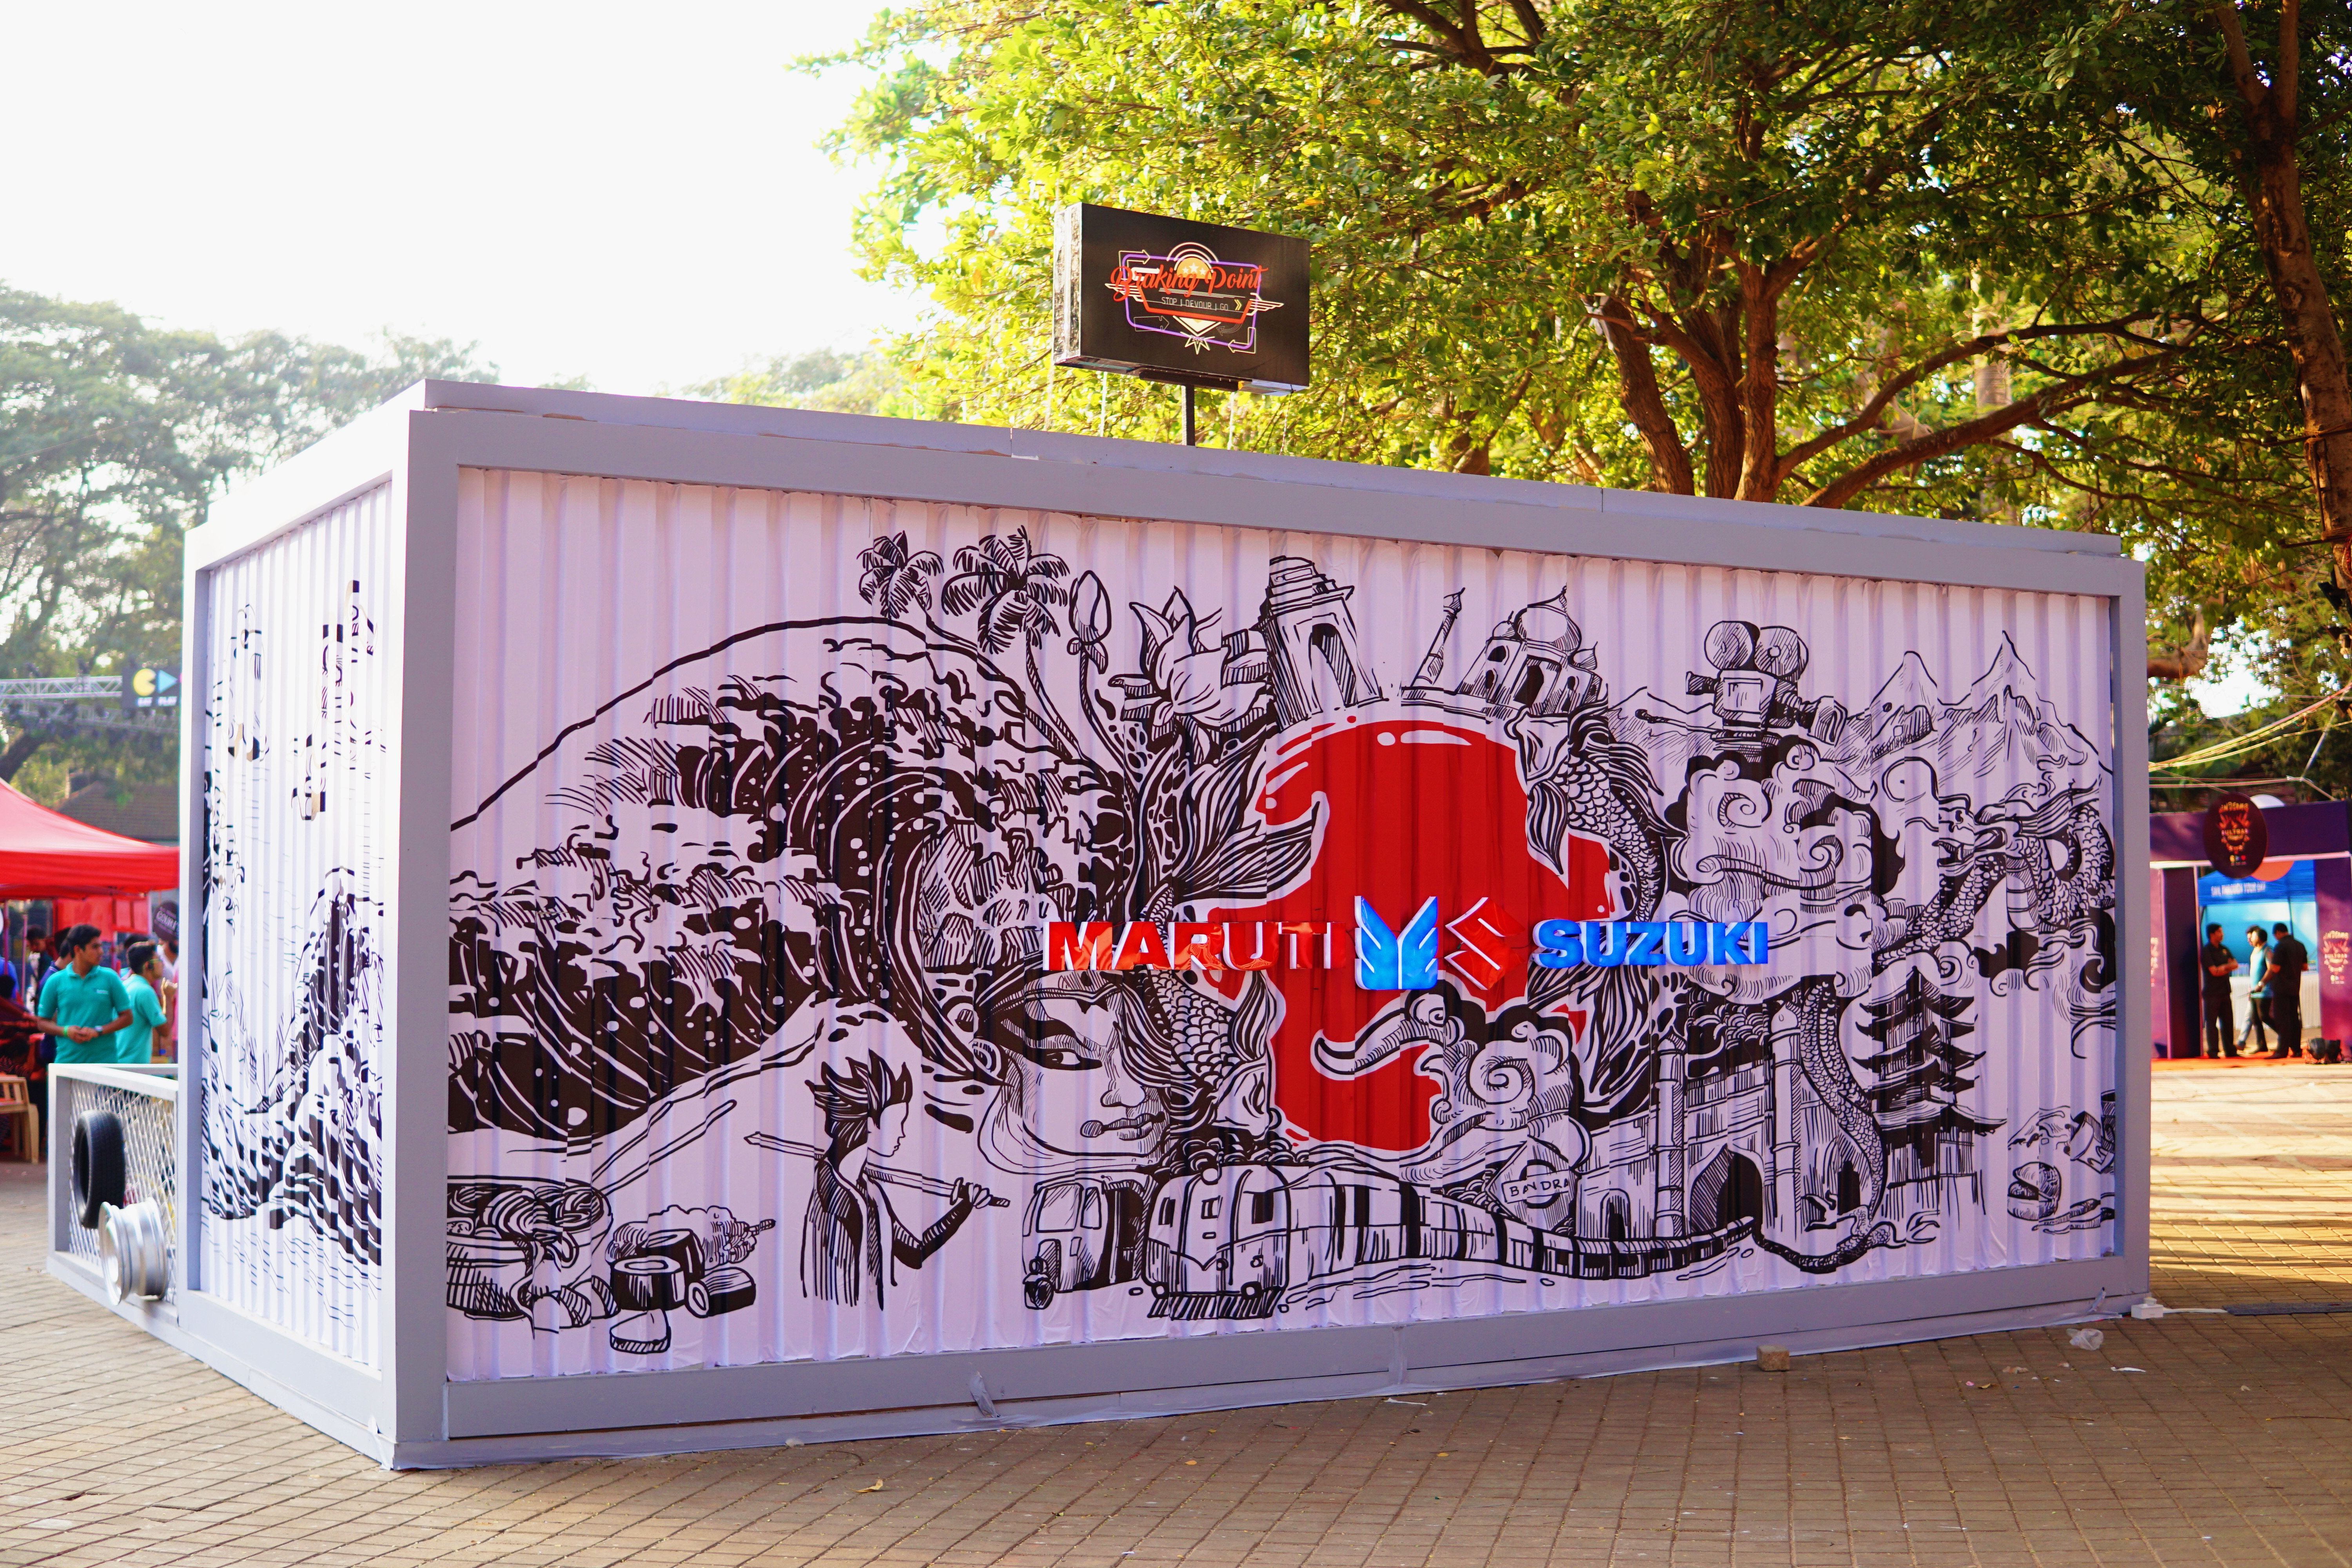 Maruti Suzuki Braking Point Café at Eat Play Love